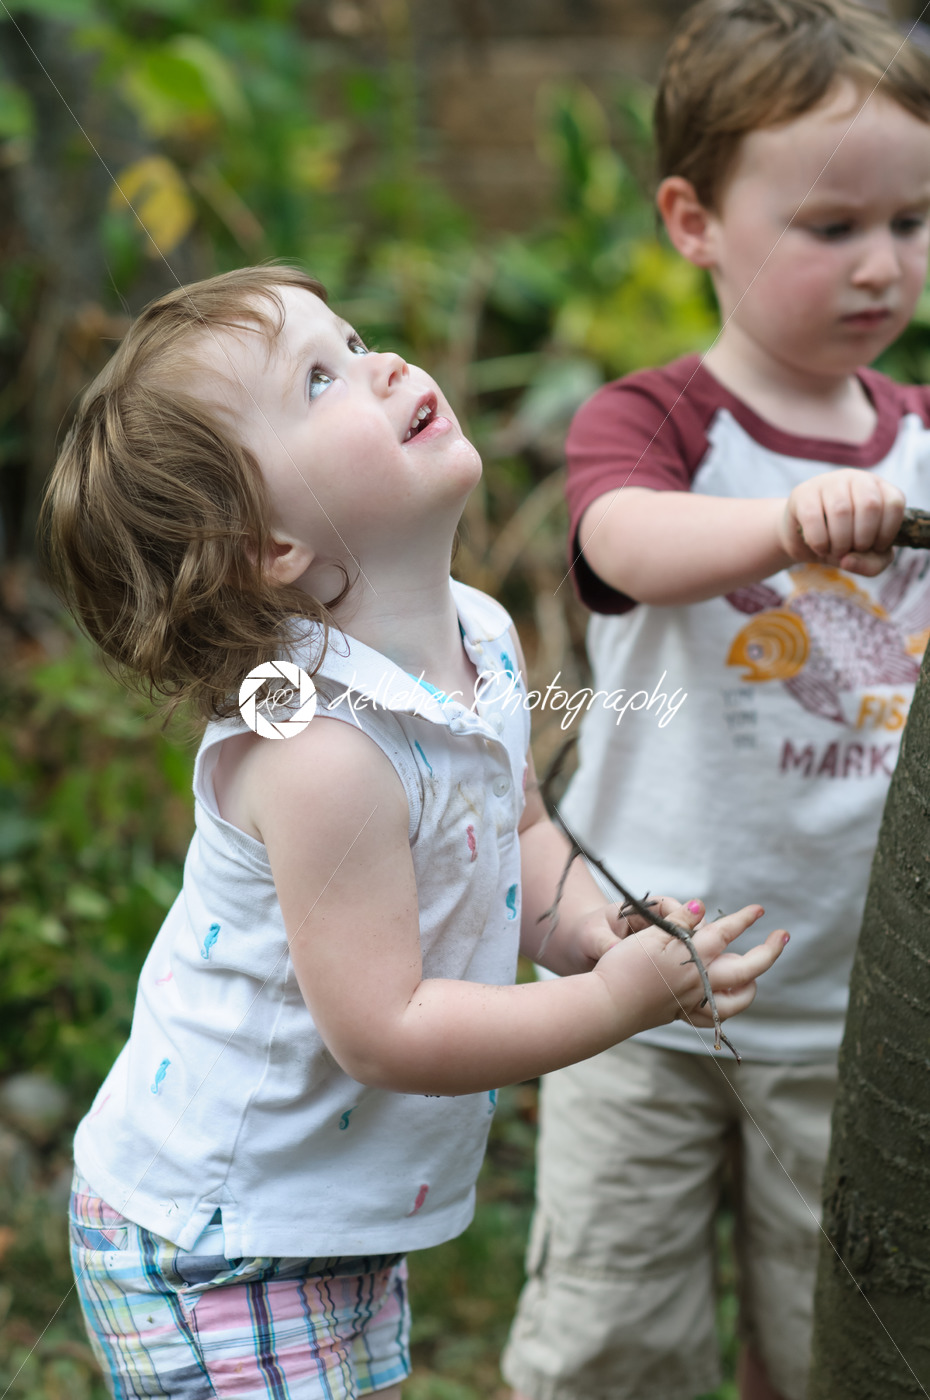 Young boy and girl looking up at a tree in the back yard - Kelleher Photography Store